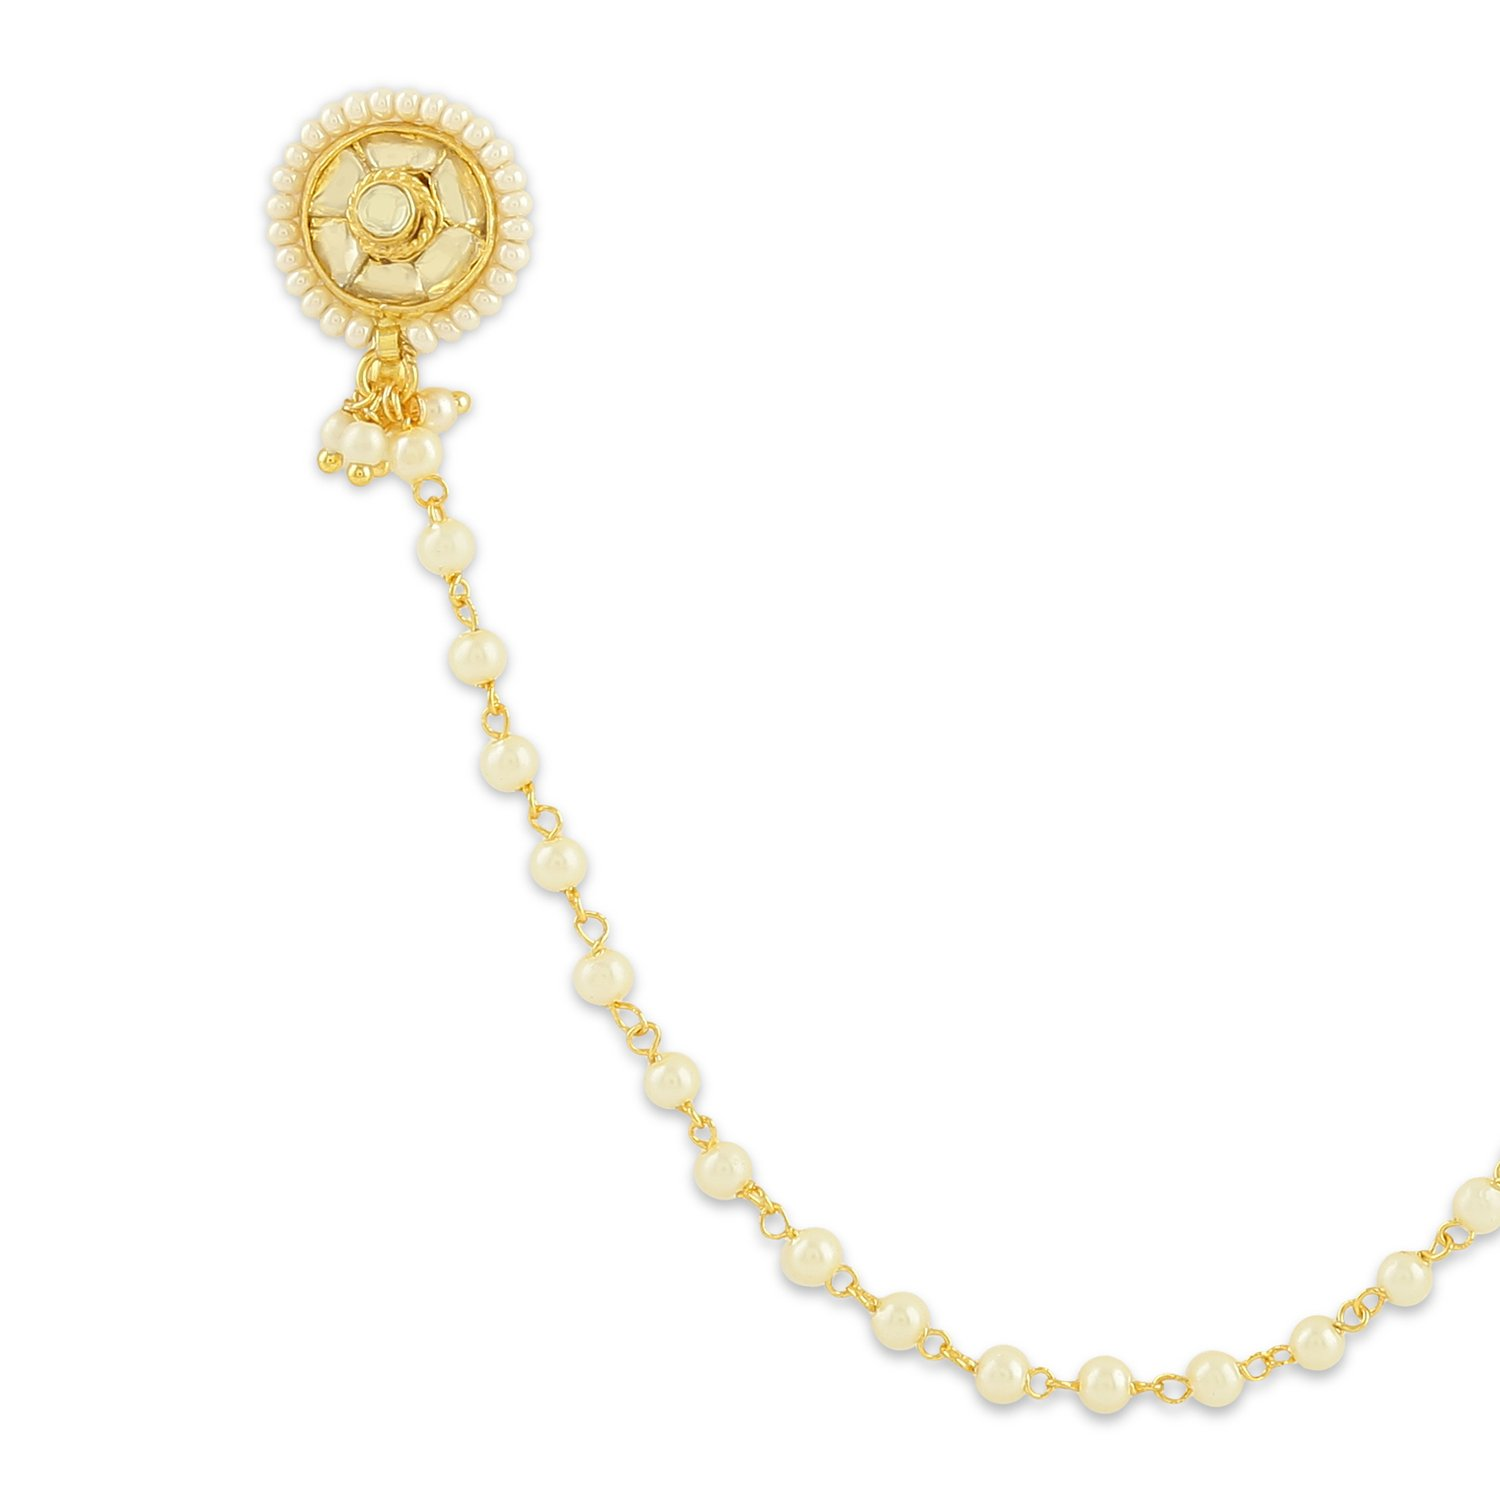 Buy Accessher Golden Kundan Nose Pin With Chain Clip On Nose Ring